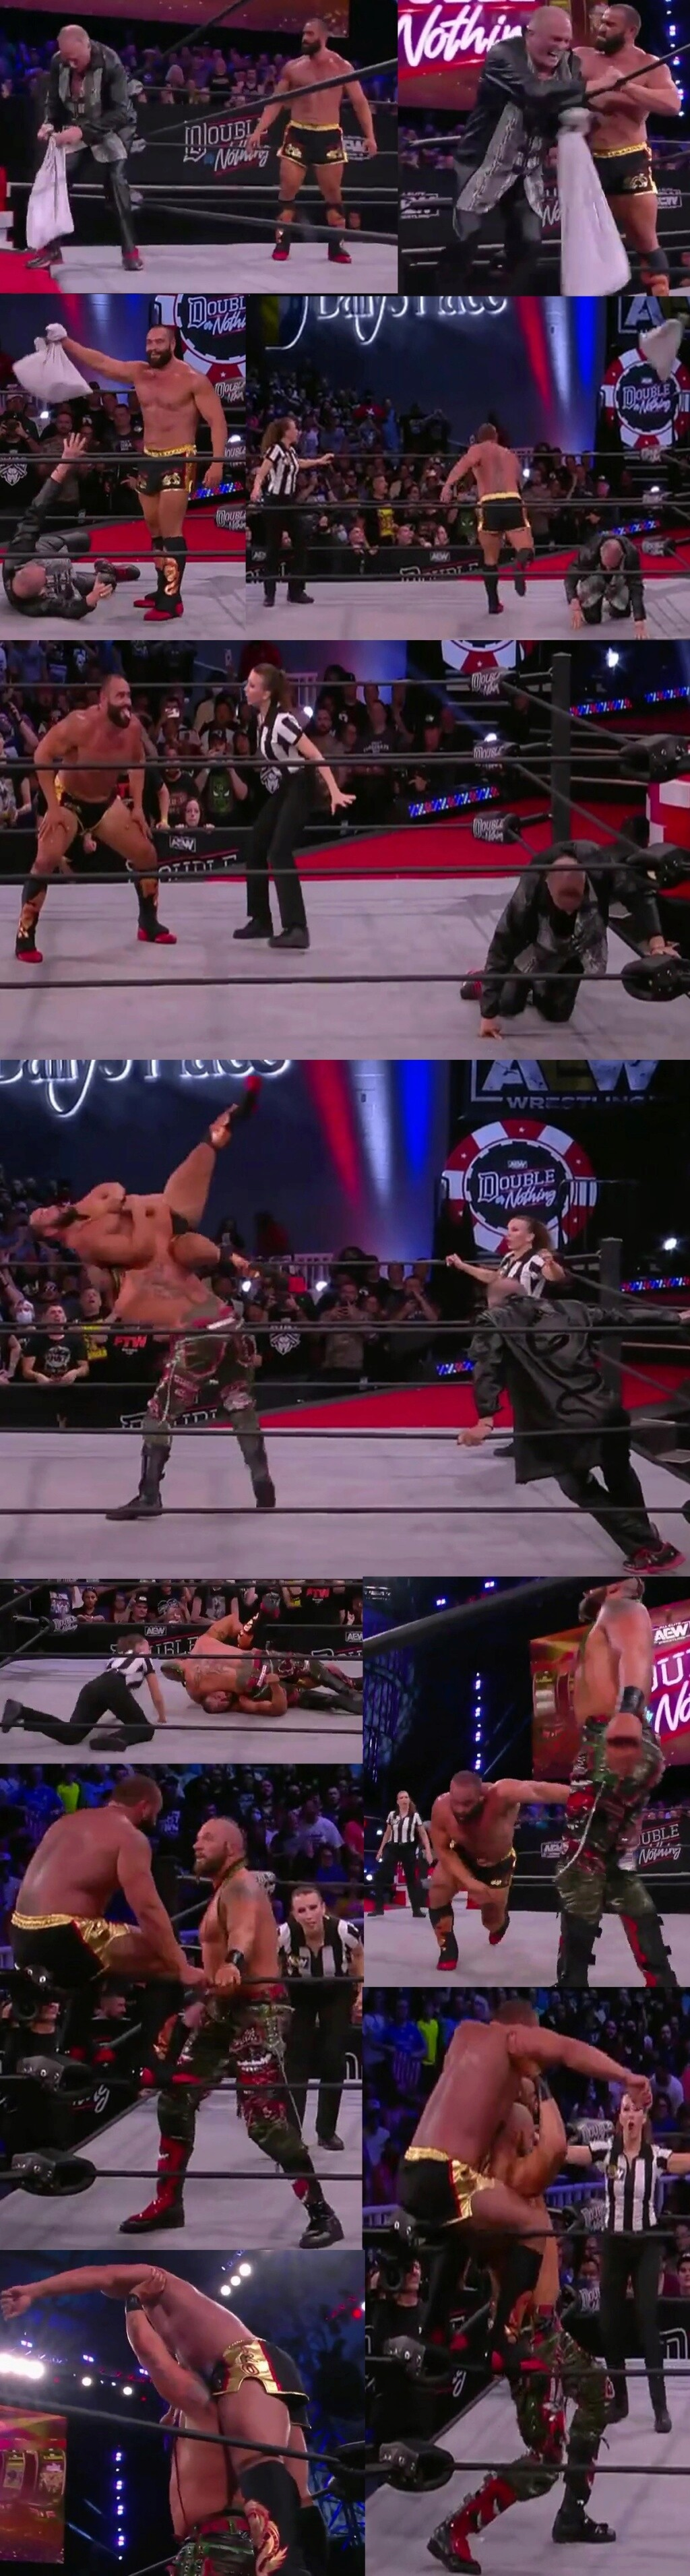 Official Wrestling PPV Topics: WWE Extreme Rules Results! - Page 3 Aew_do56